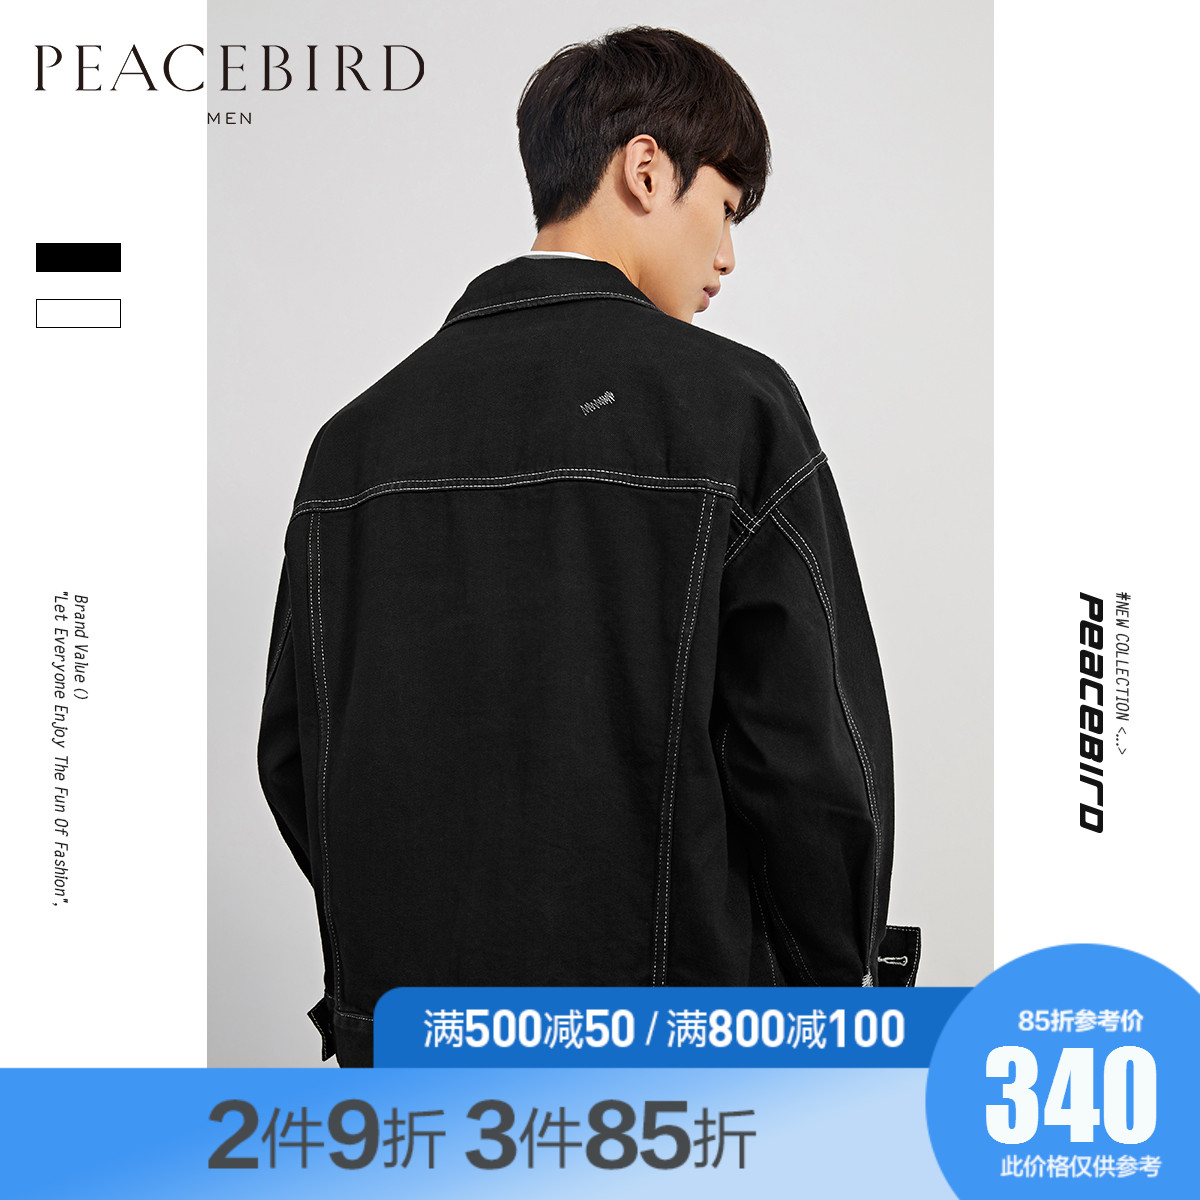 Taiping bird men's open line jacket men's denim jacket tooling jacket trend youth lapel jacket Korean version